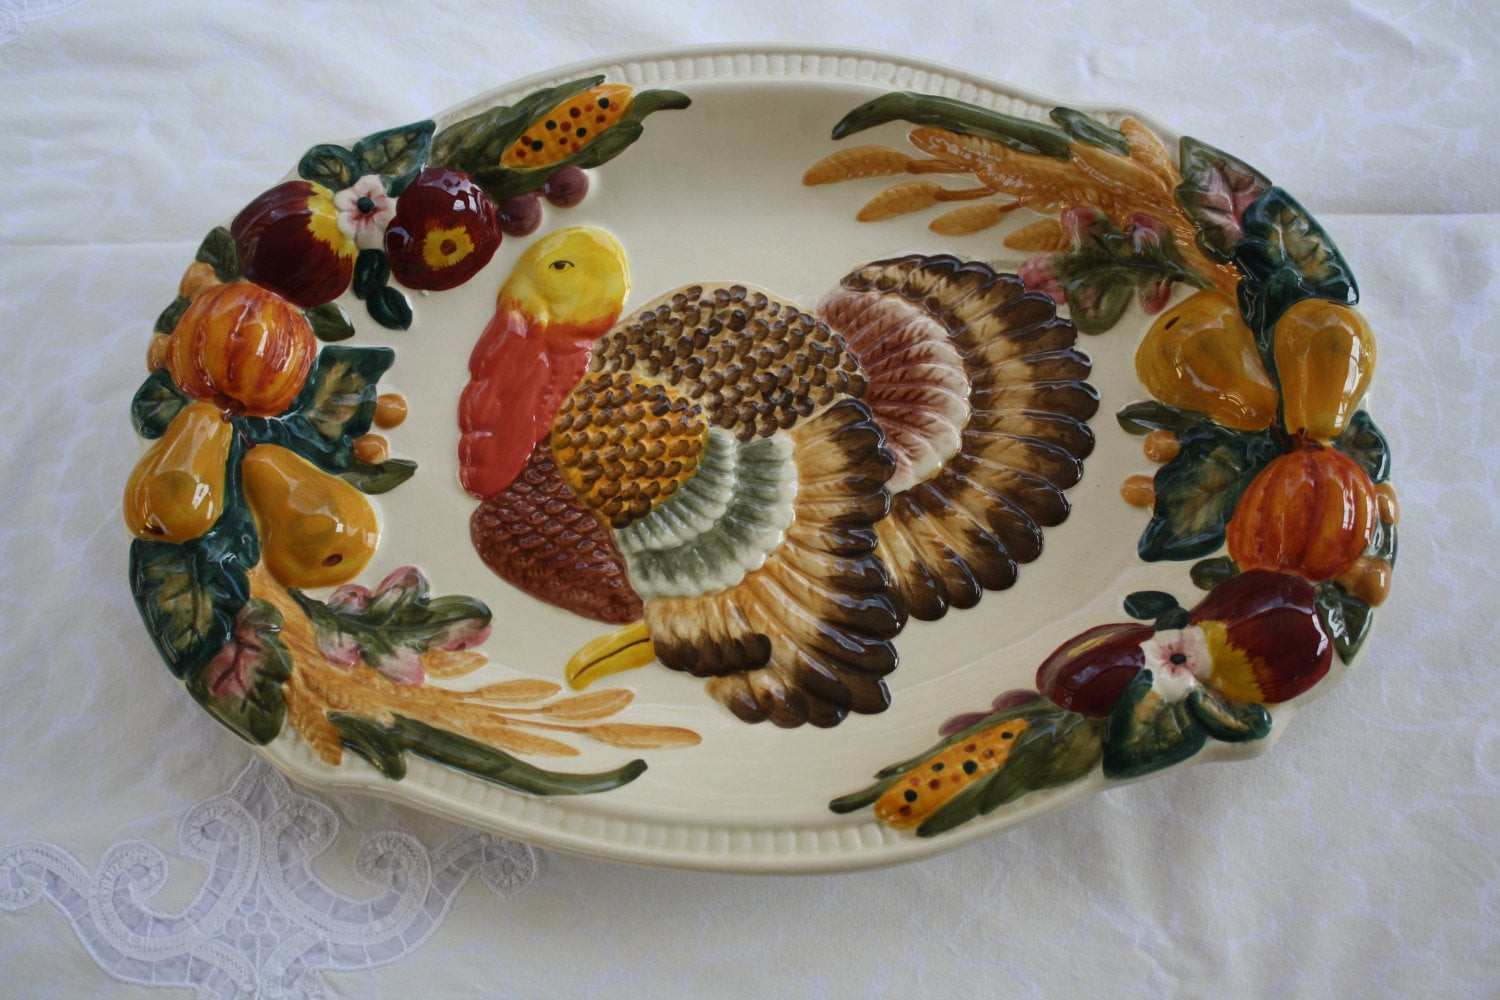 Turkey Platters Thanksgiving  Vintage Turkey Platter Club Beau Rivage Rare Raised Fruit